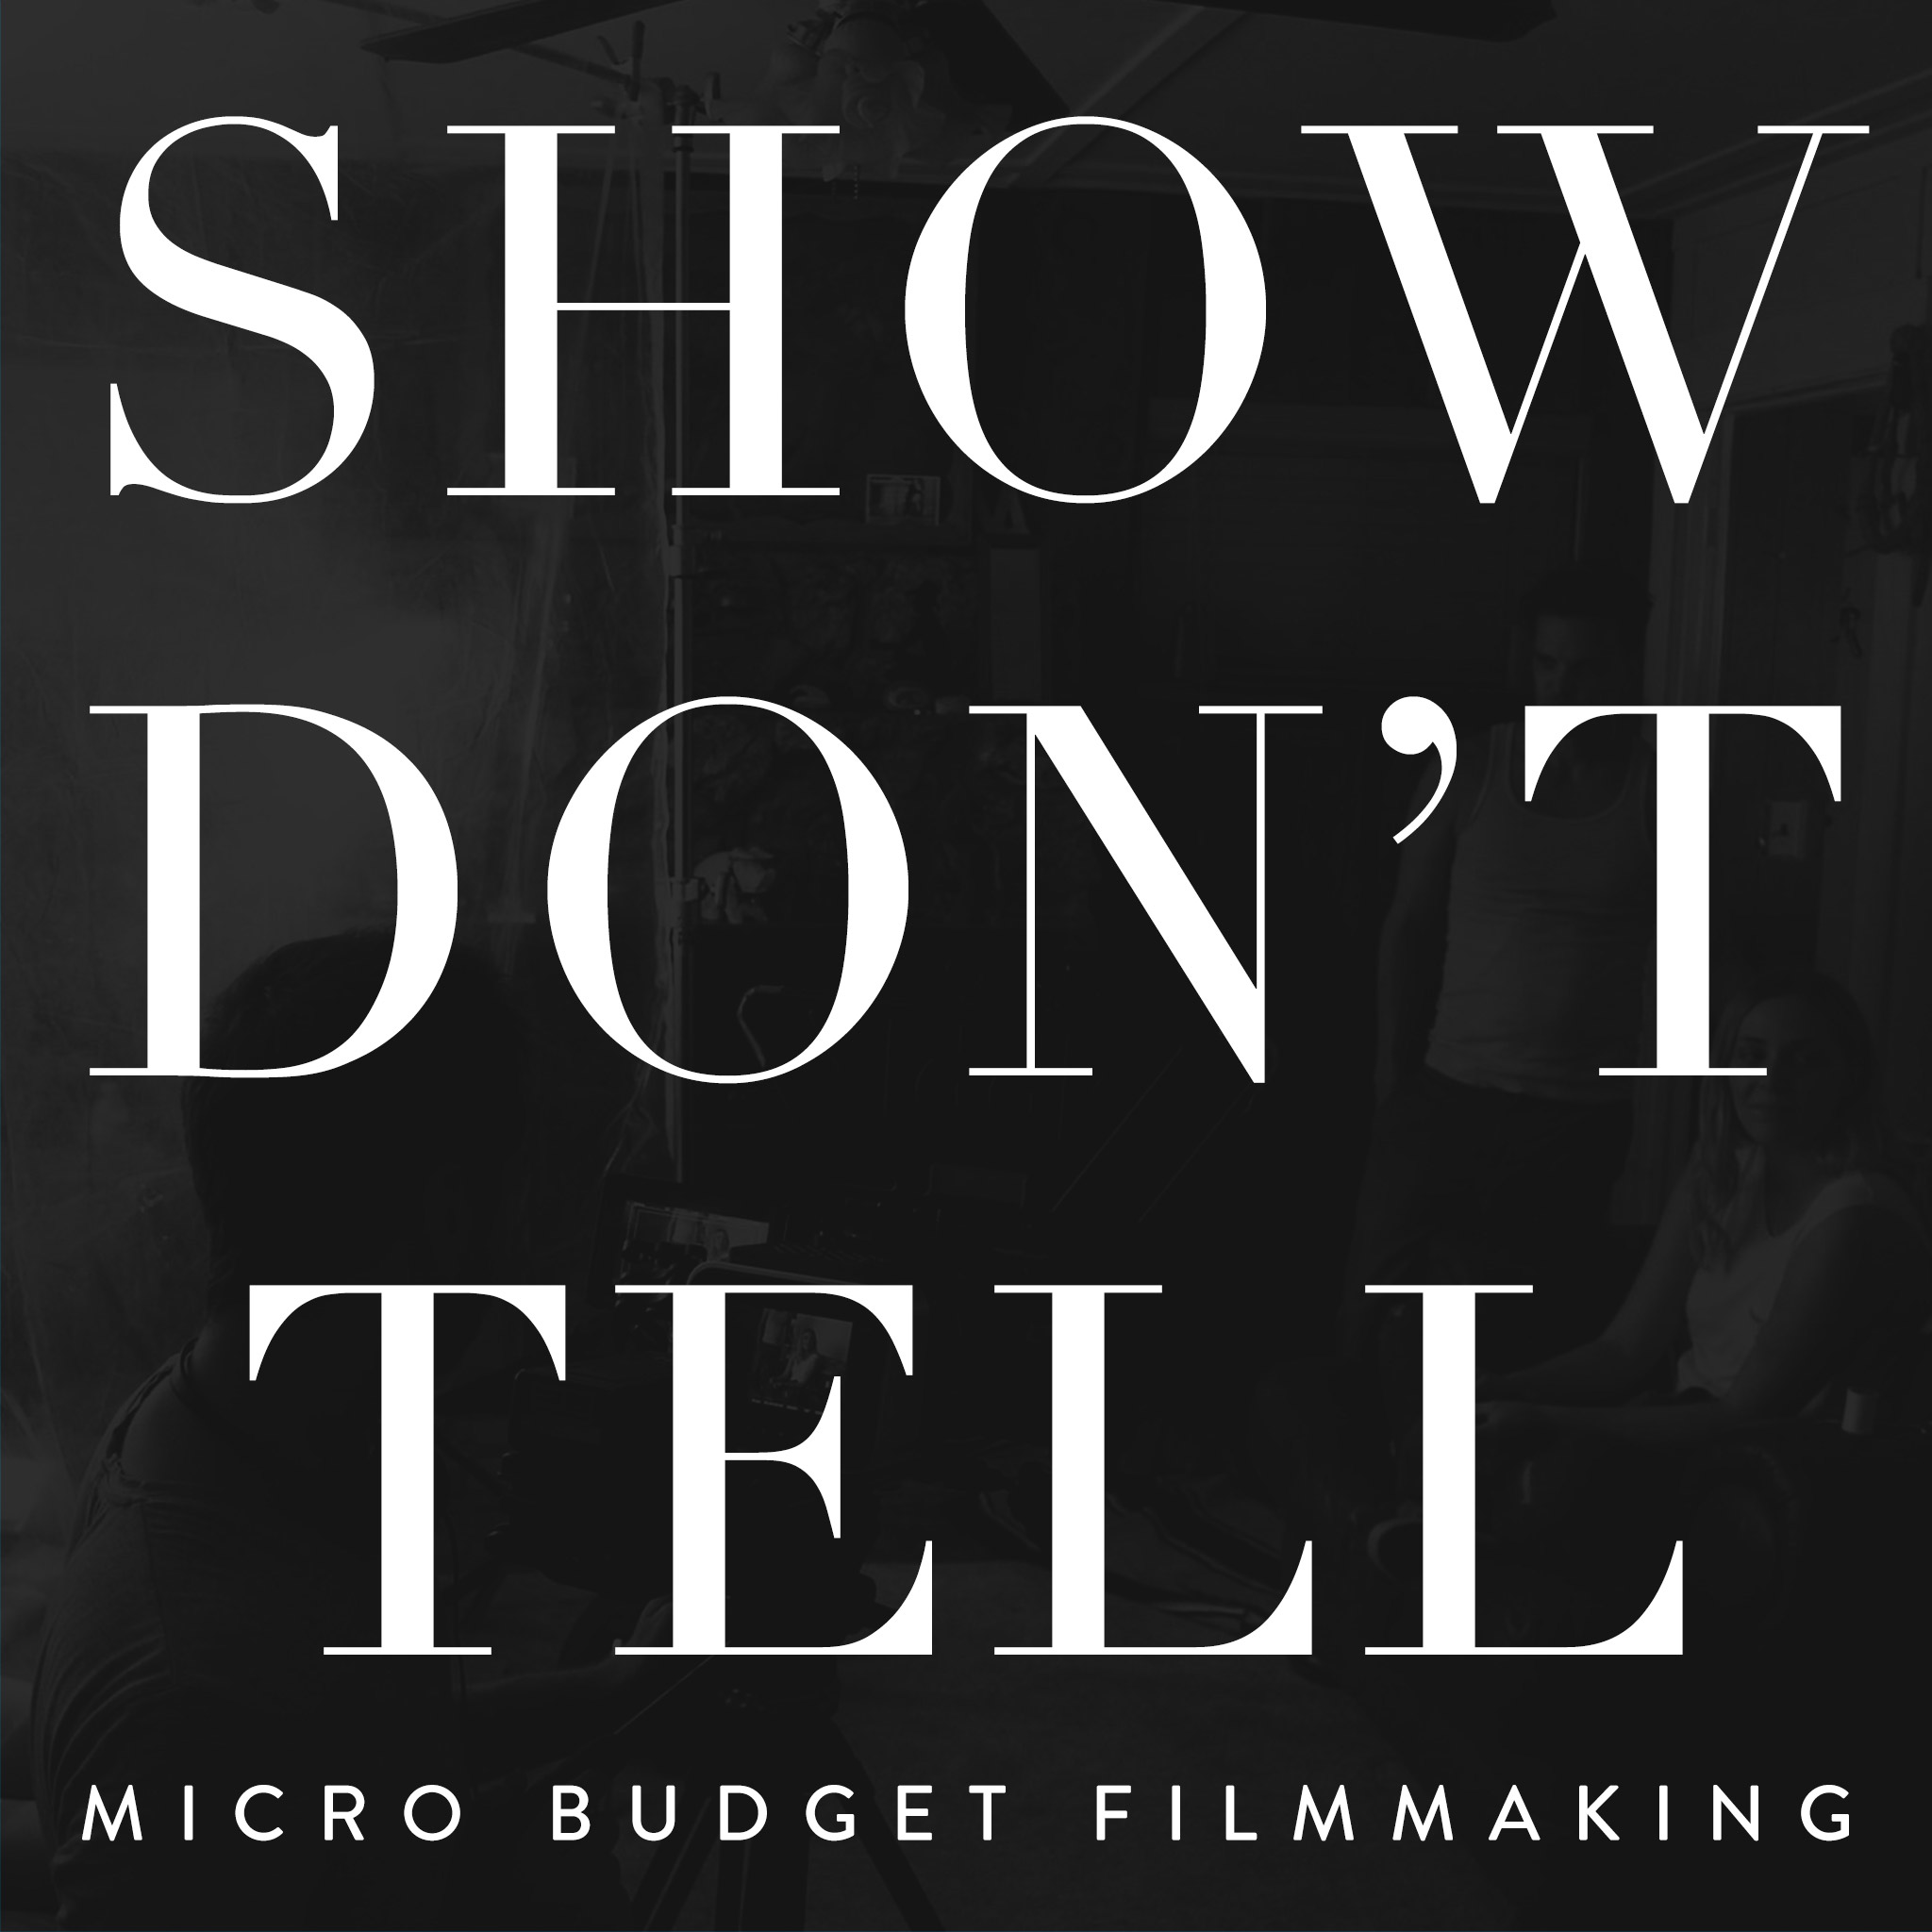 Directing a $67,000 Micro-Budget Feature Film With Joe McClean